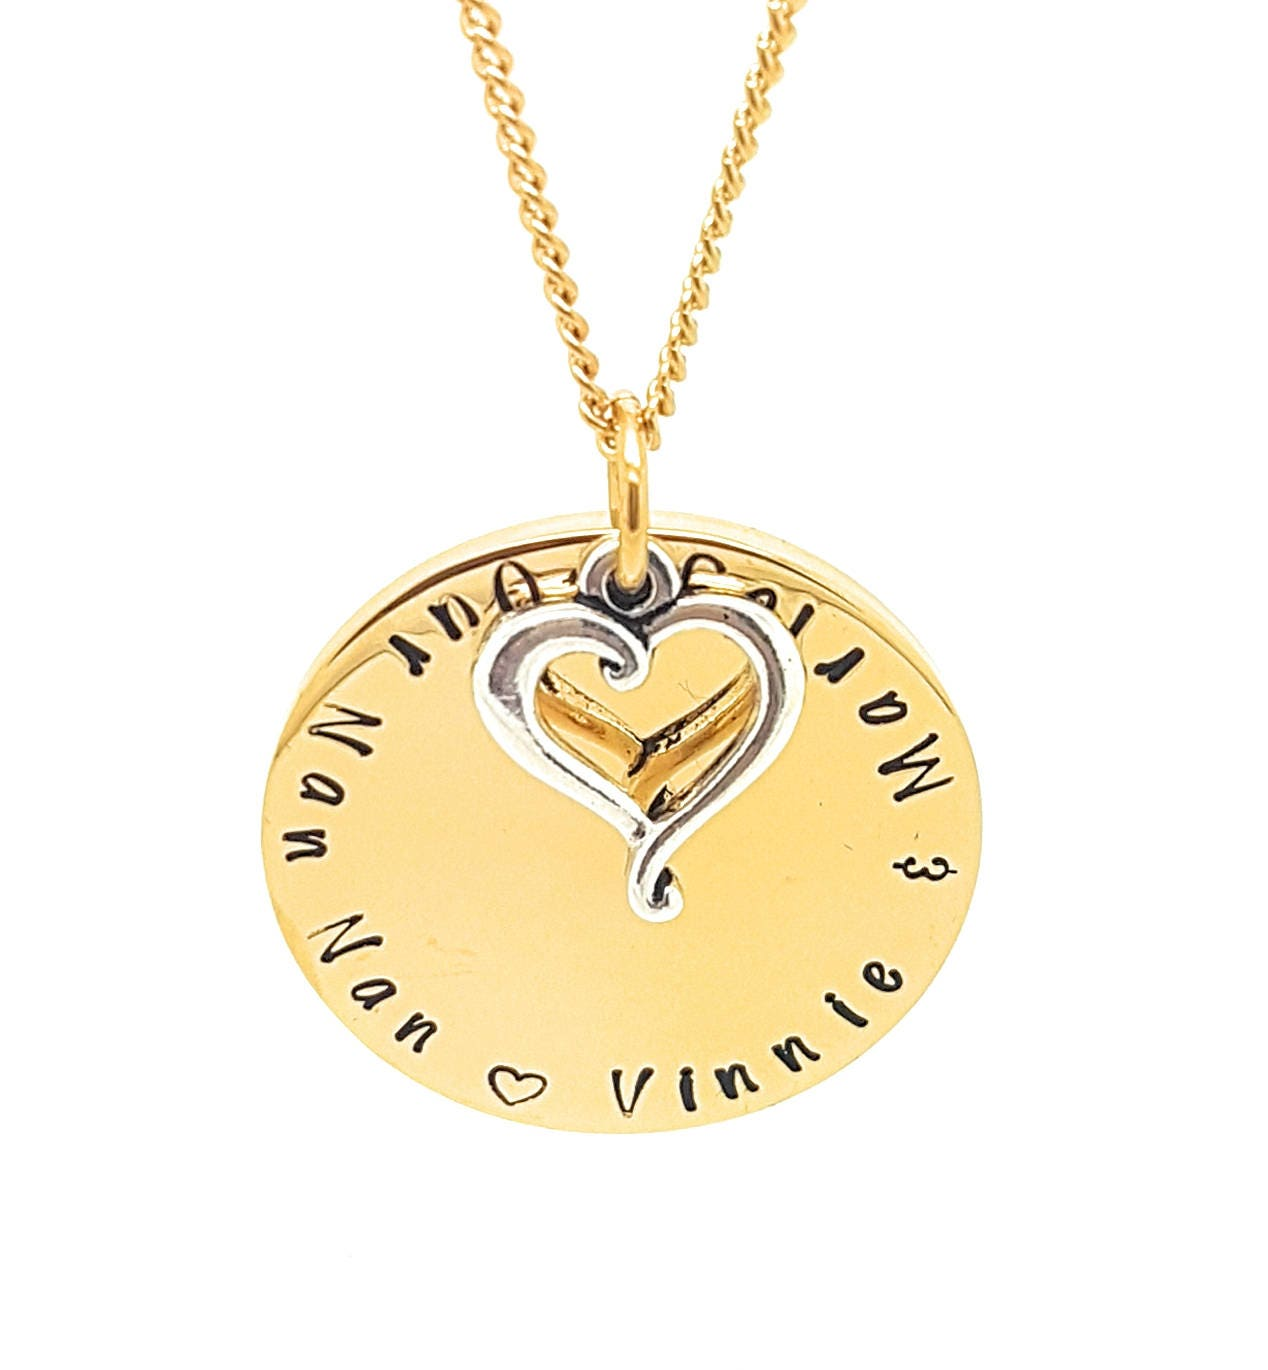 Gold and silver family names love heart pendant personalised gold and silver family names love heart pendant personalised jewellery hand stamped name necklaces gold family name pendants gift mozeypictures Choice Image